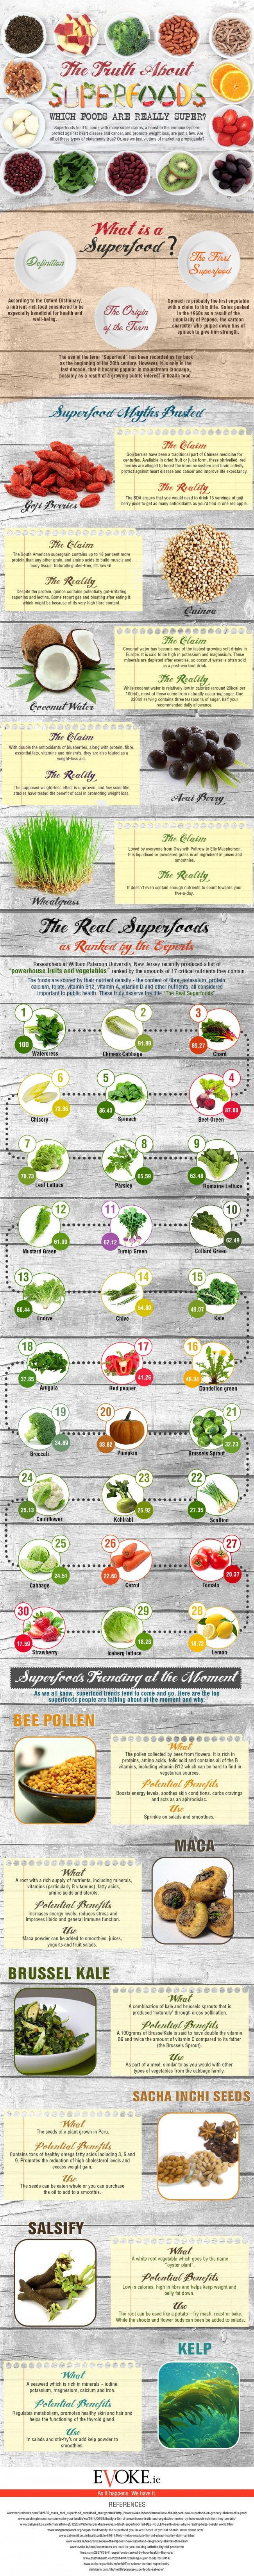 An infographic which dissects myths surrounding these so-called 'superfoods' and identifies the 'real superfoods'. Created by Evoke.ie.